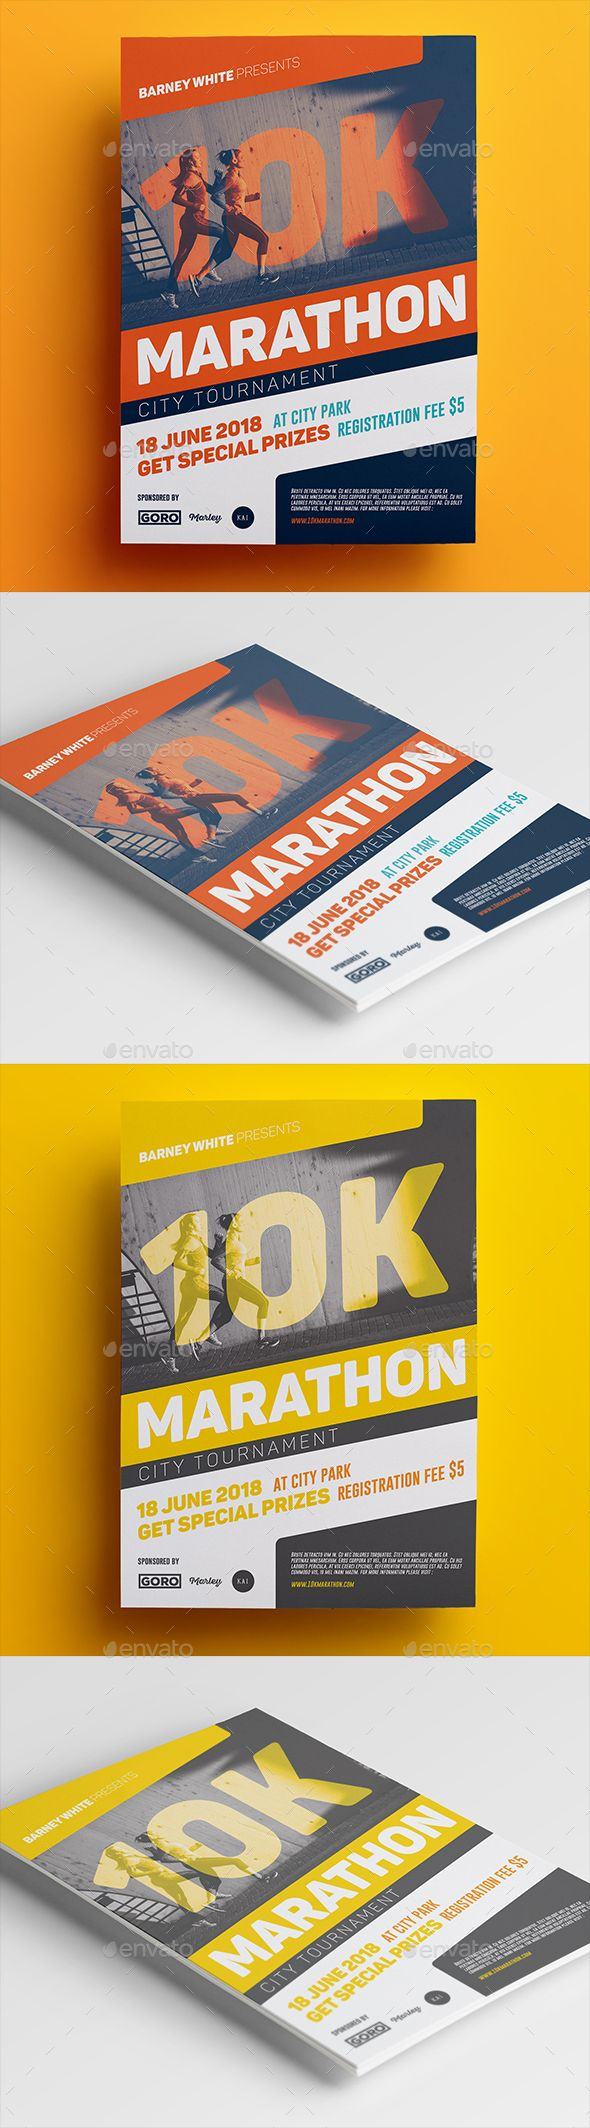 Marathon #Flyer - Sports #Events Download here:  https://graphicriver.net/item/marathon-flyer/19550277?ref=alena994